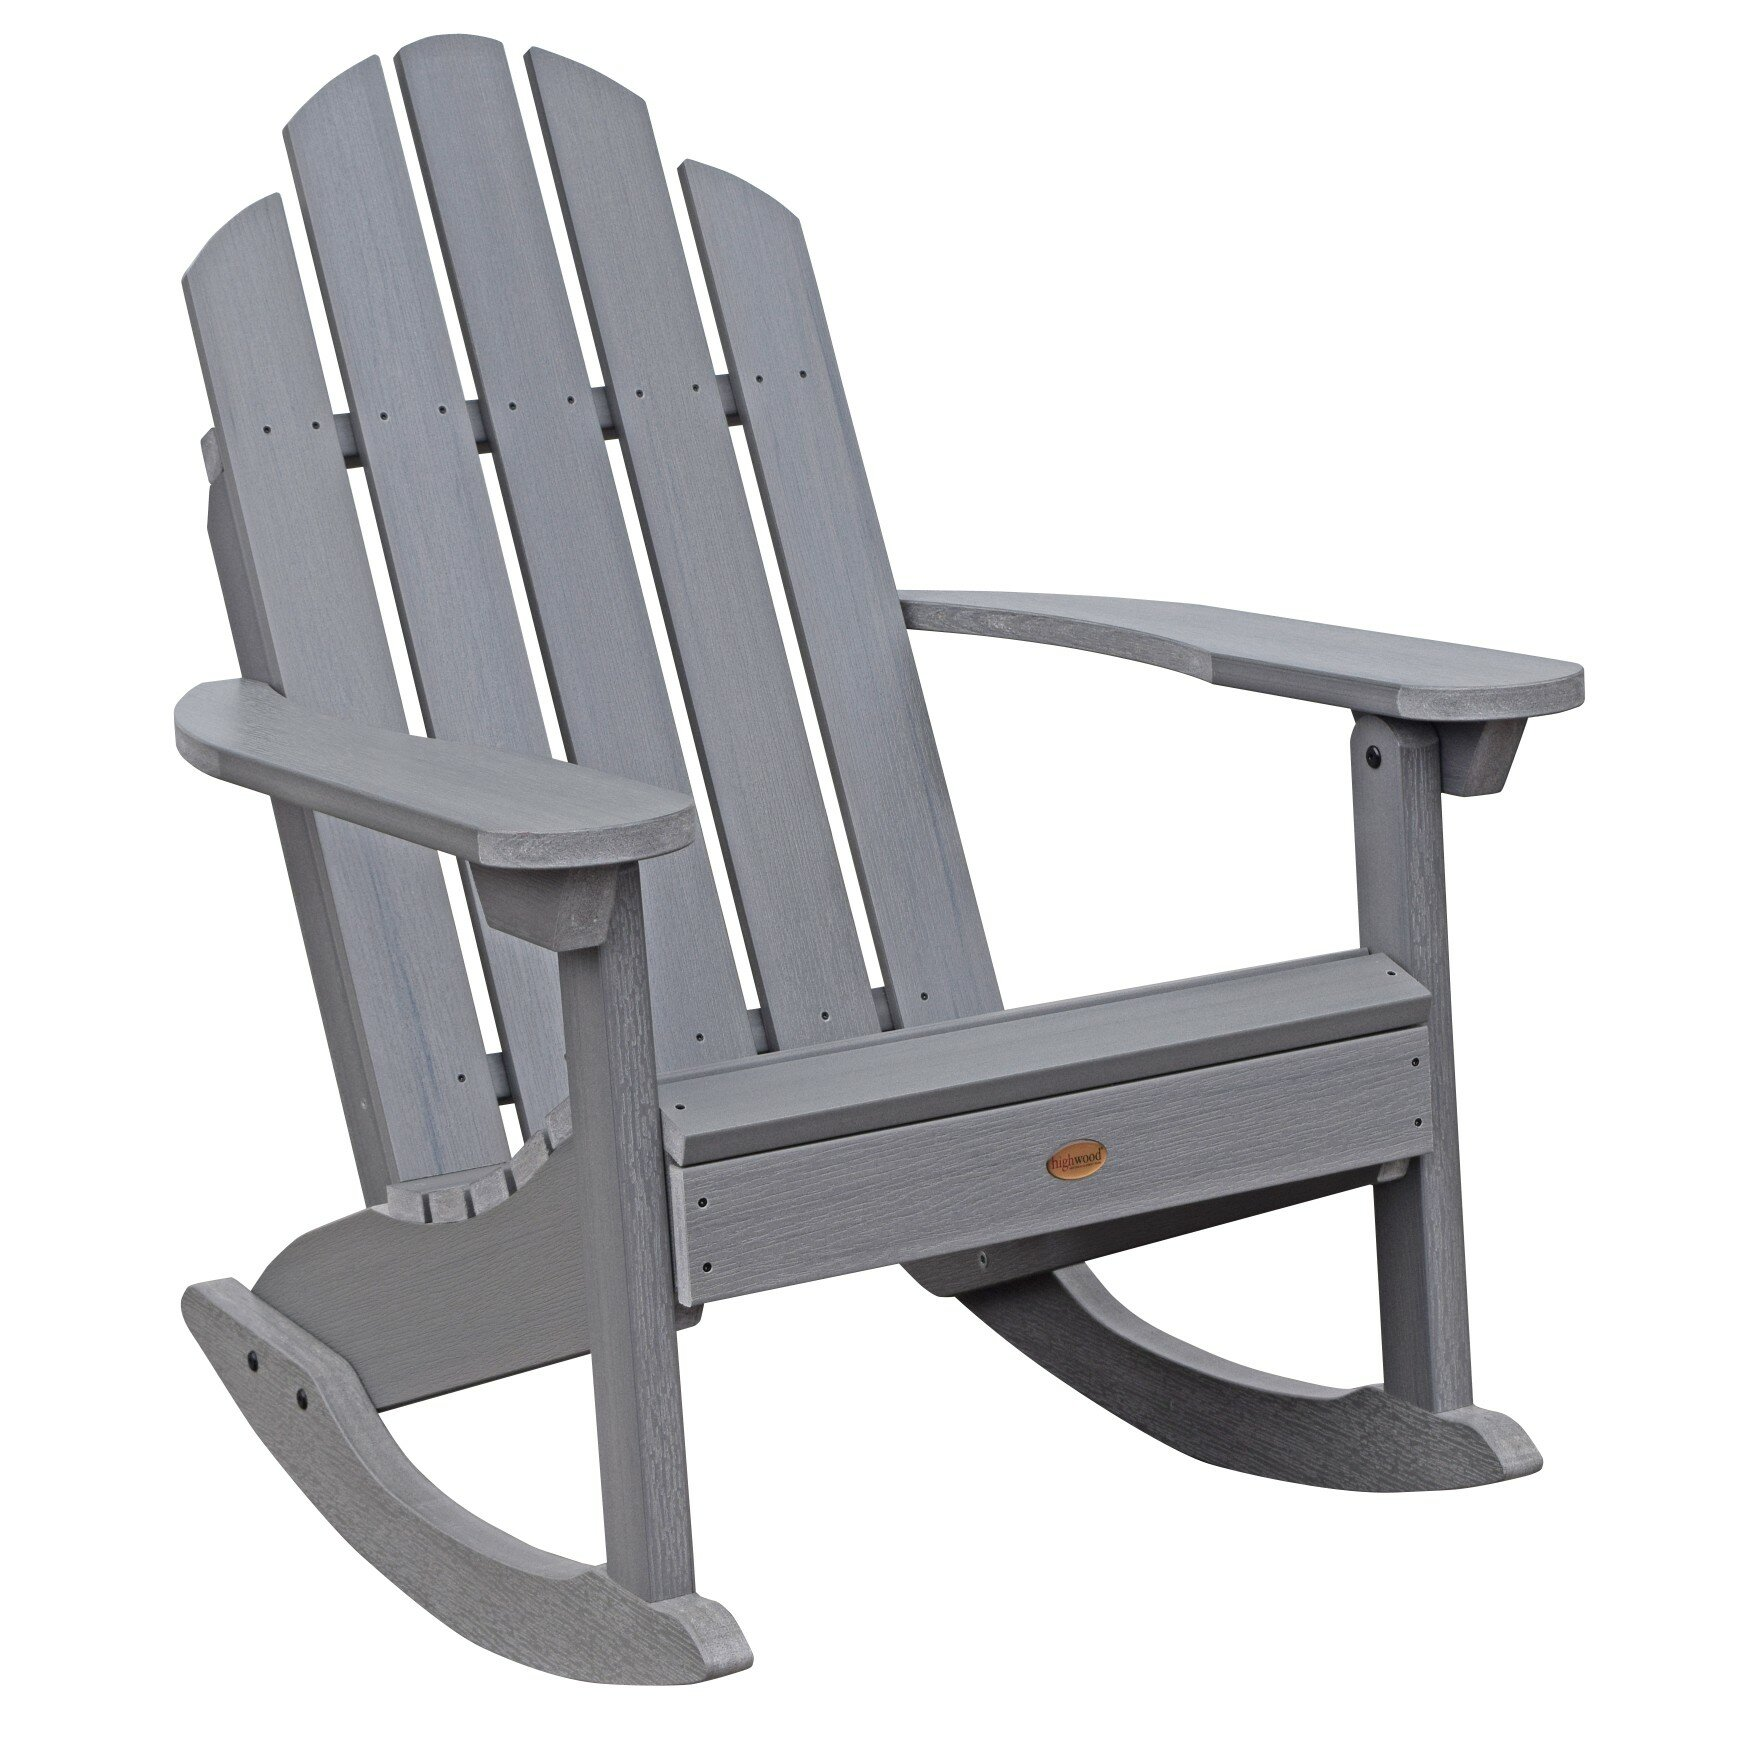 Darby Home Co Harald Adirondack Rocking Chair | Wayfair